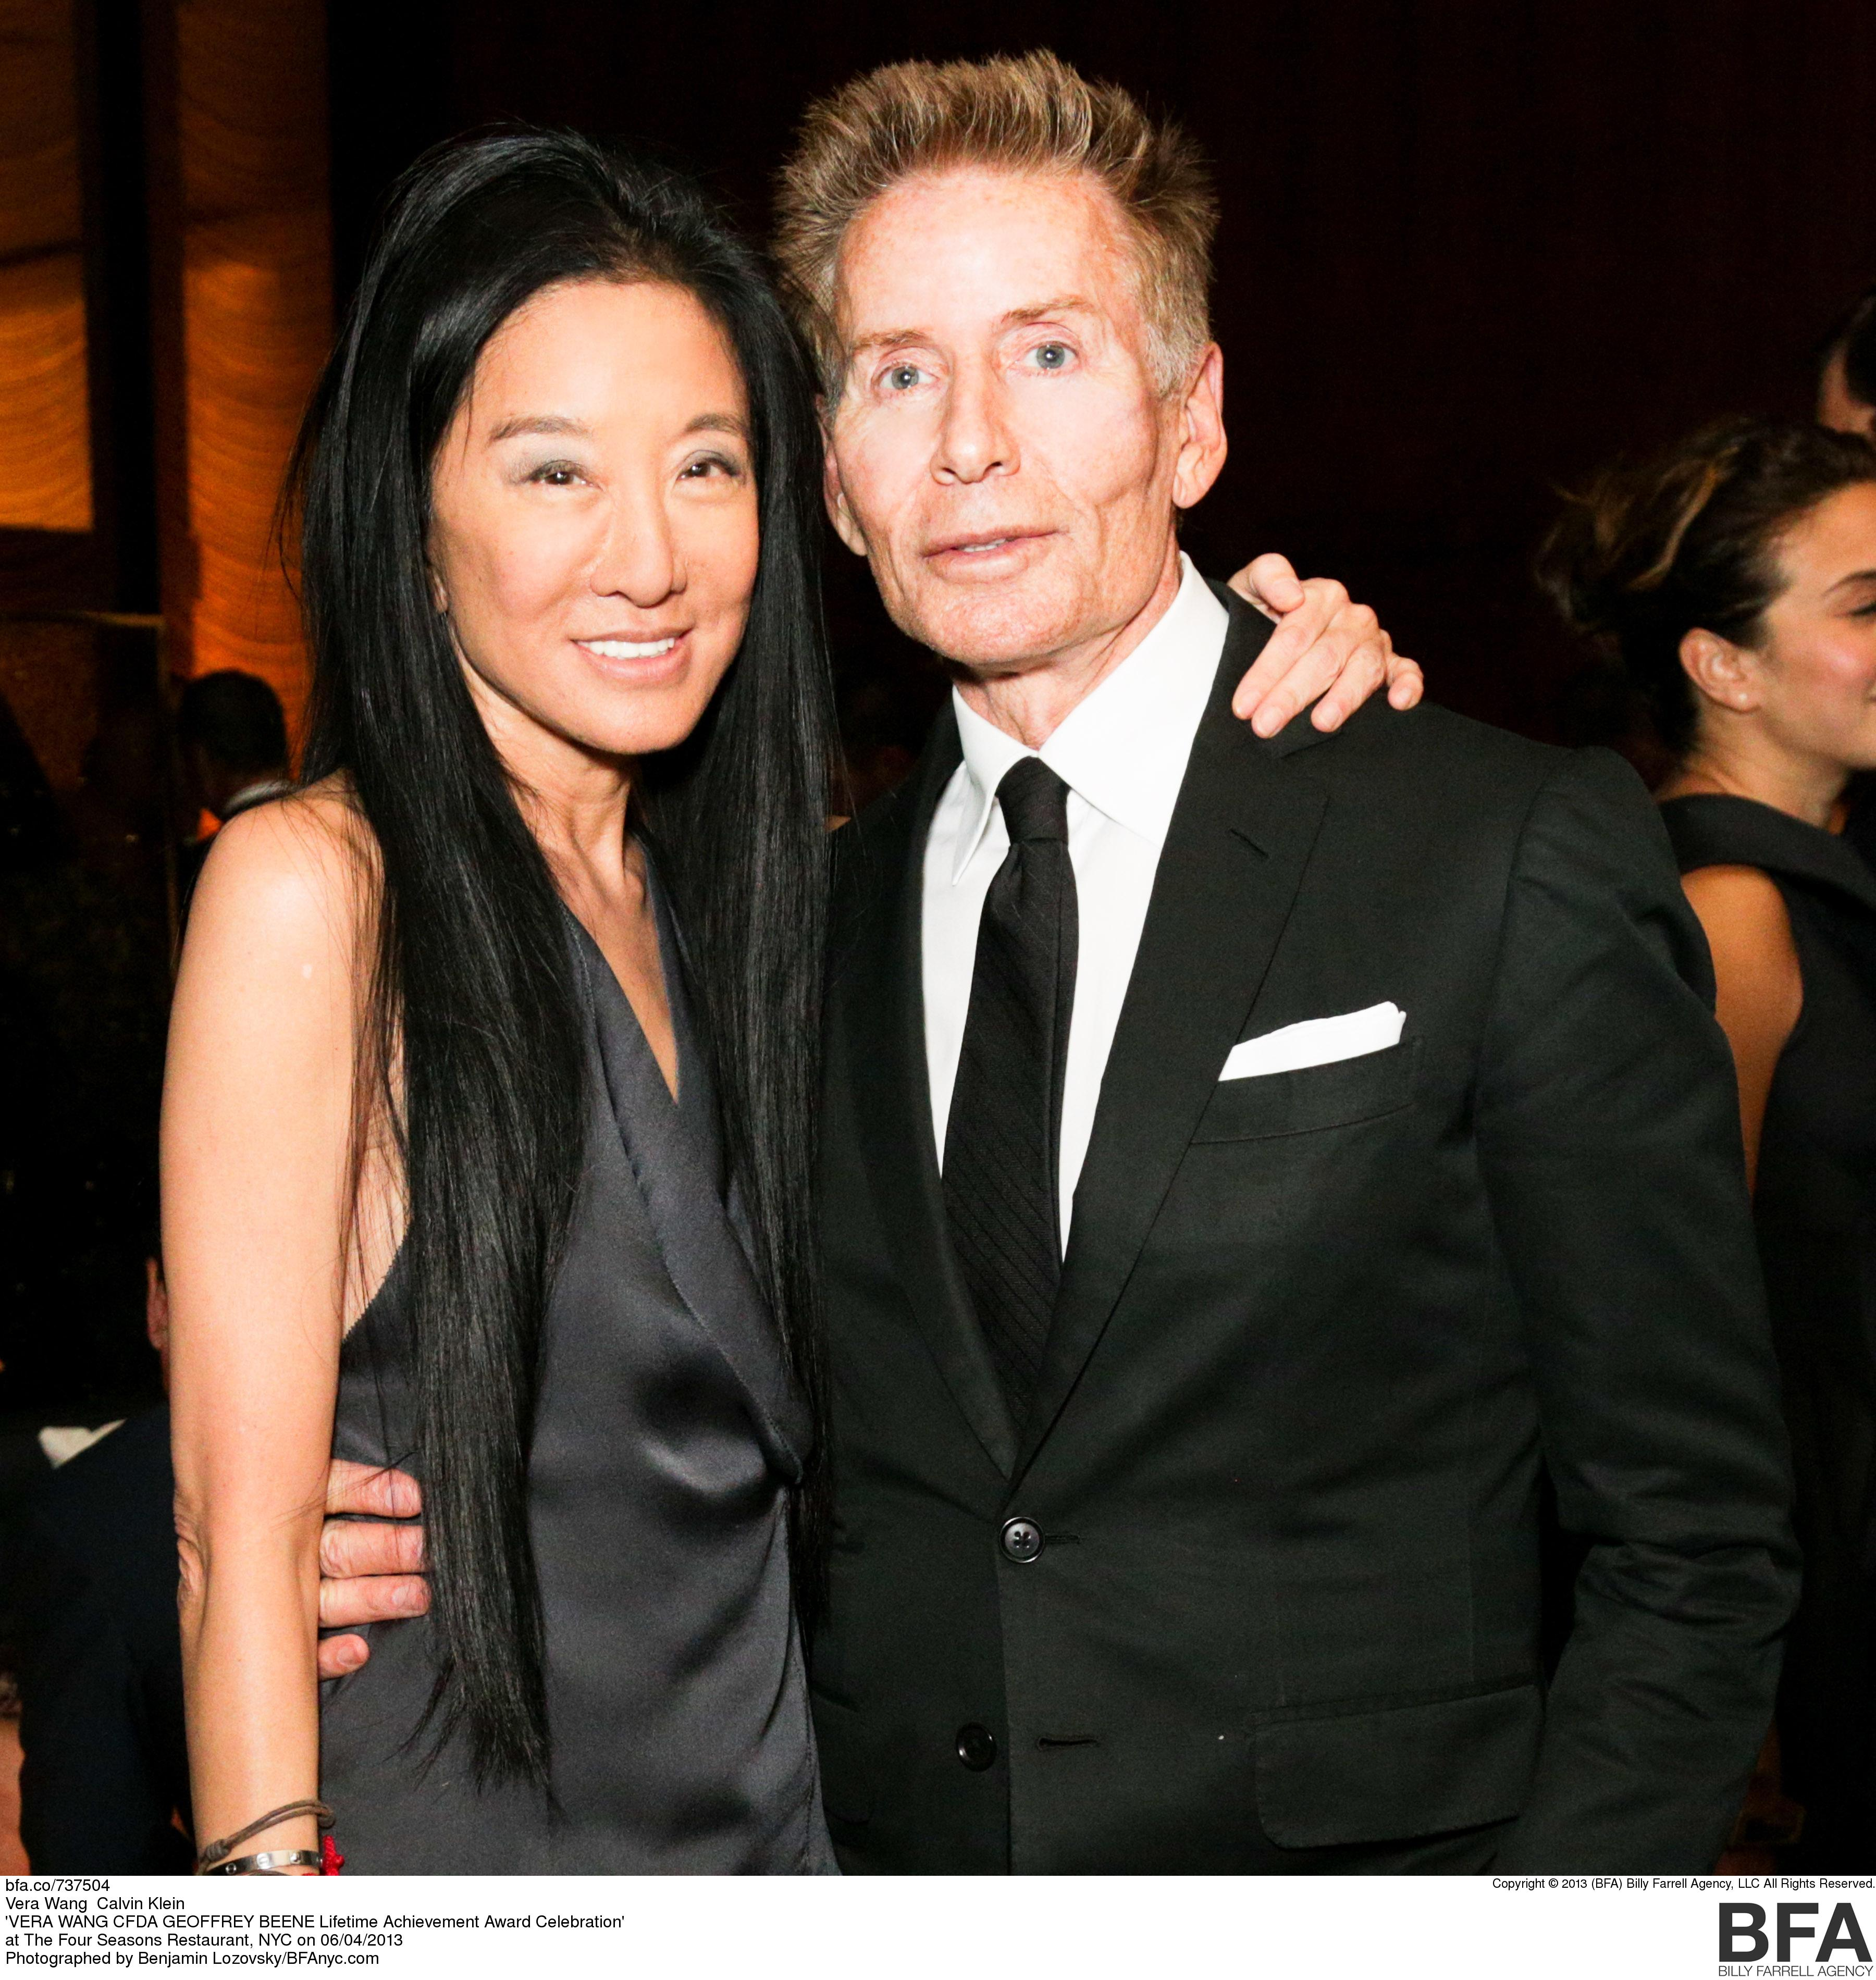 VERA WANG CFDA GEOFFREY BEENE Lifetime Achievement Award Celebration